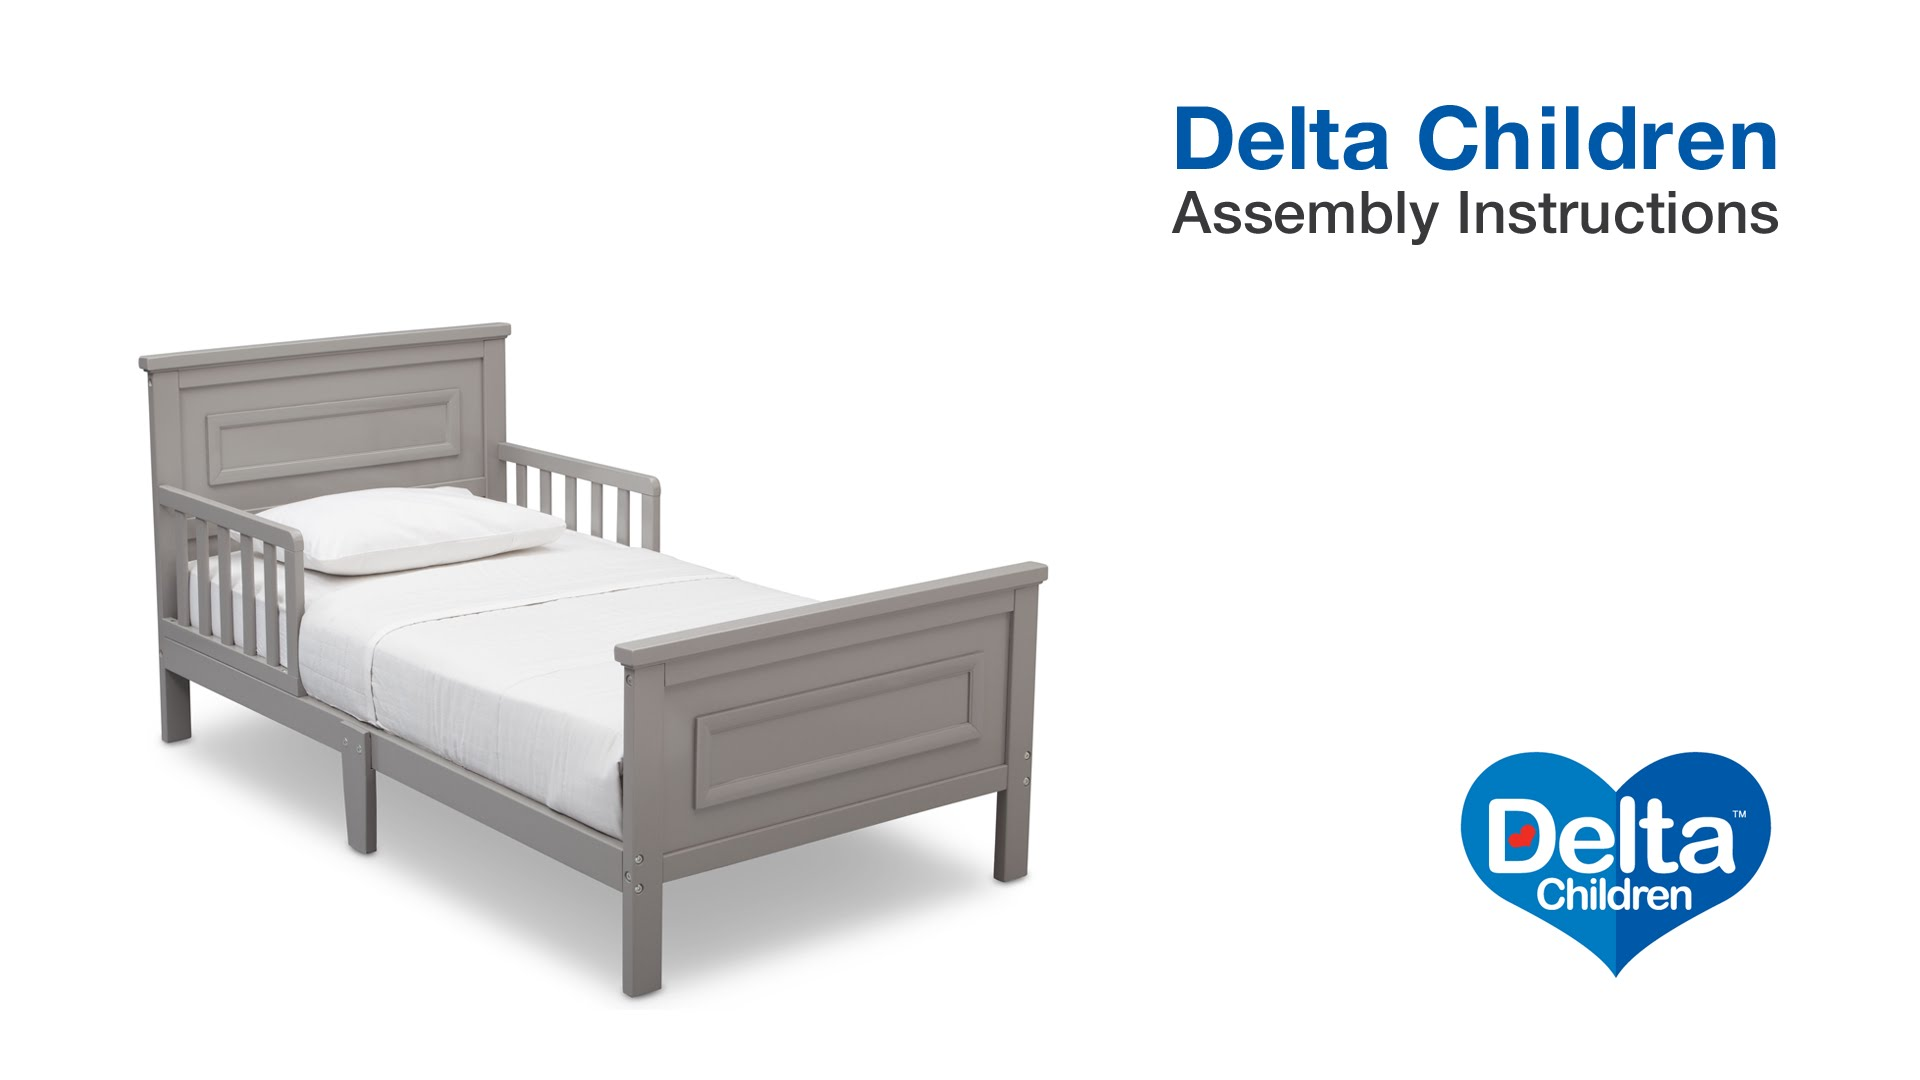 delta cars toddler bed instructions photo - 8